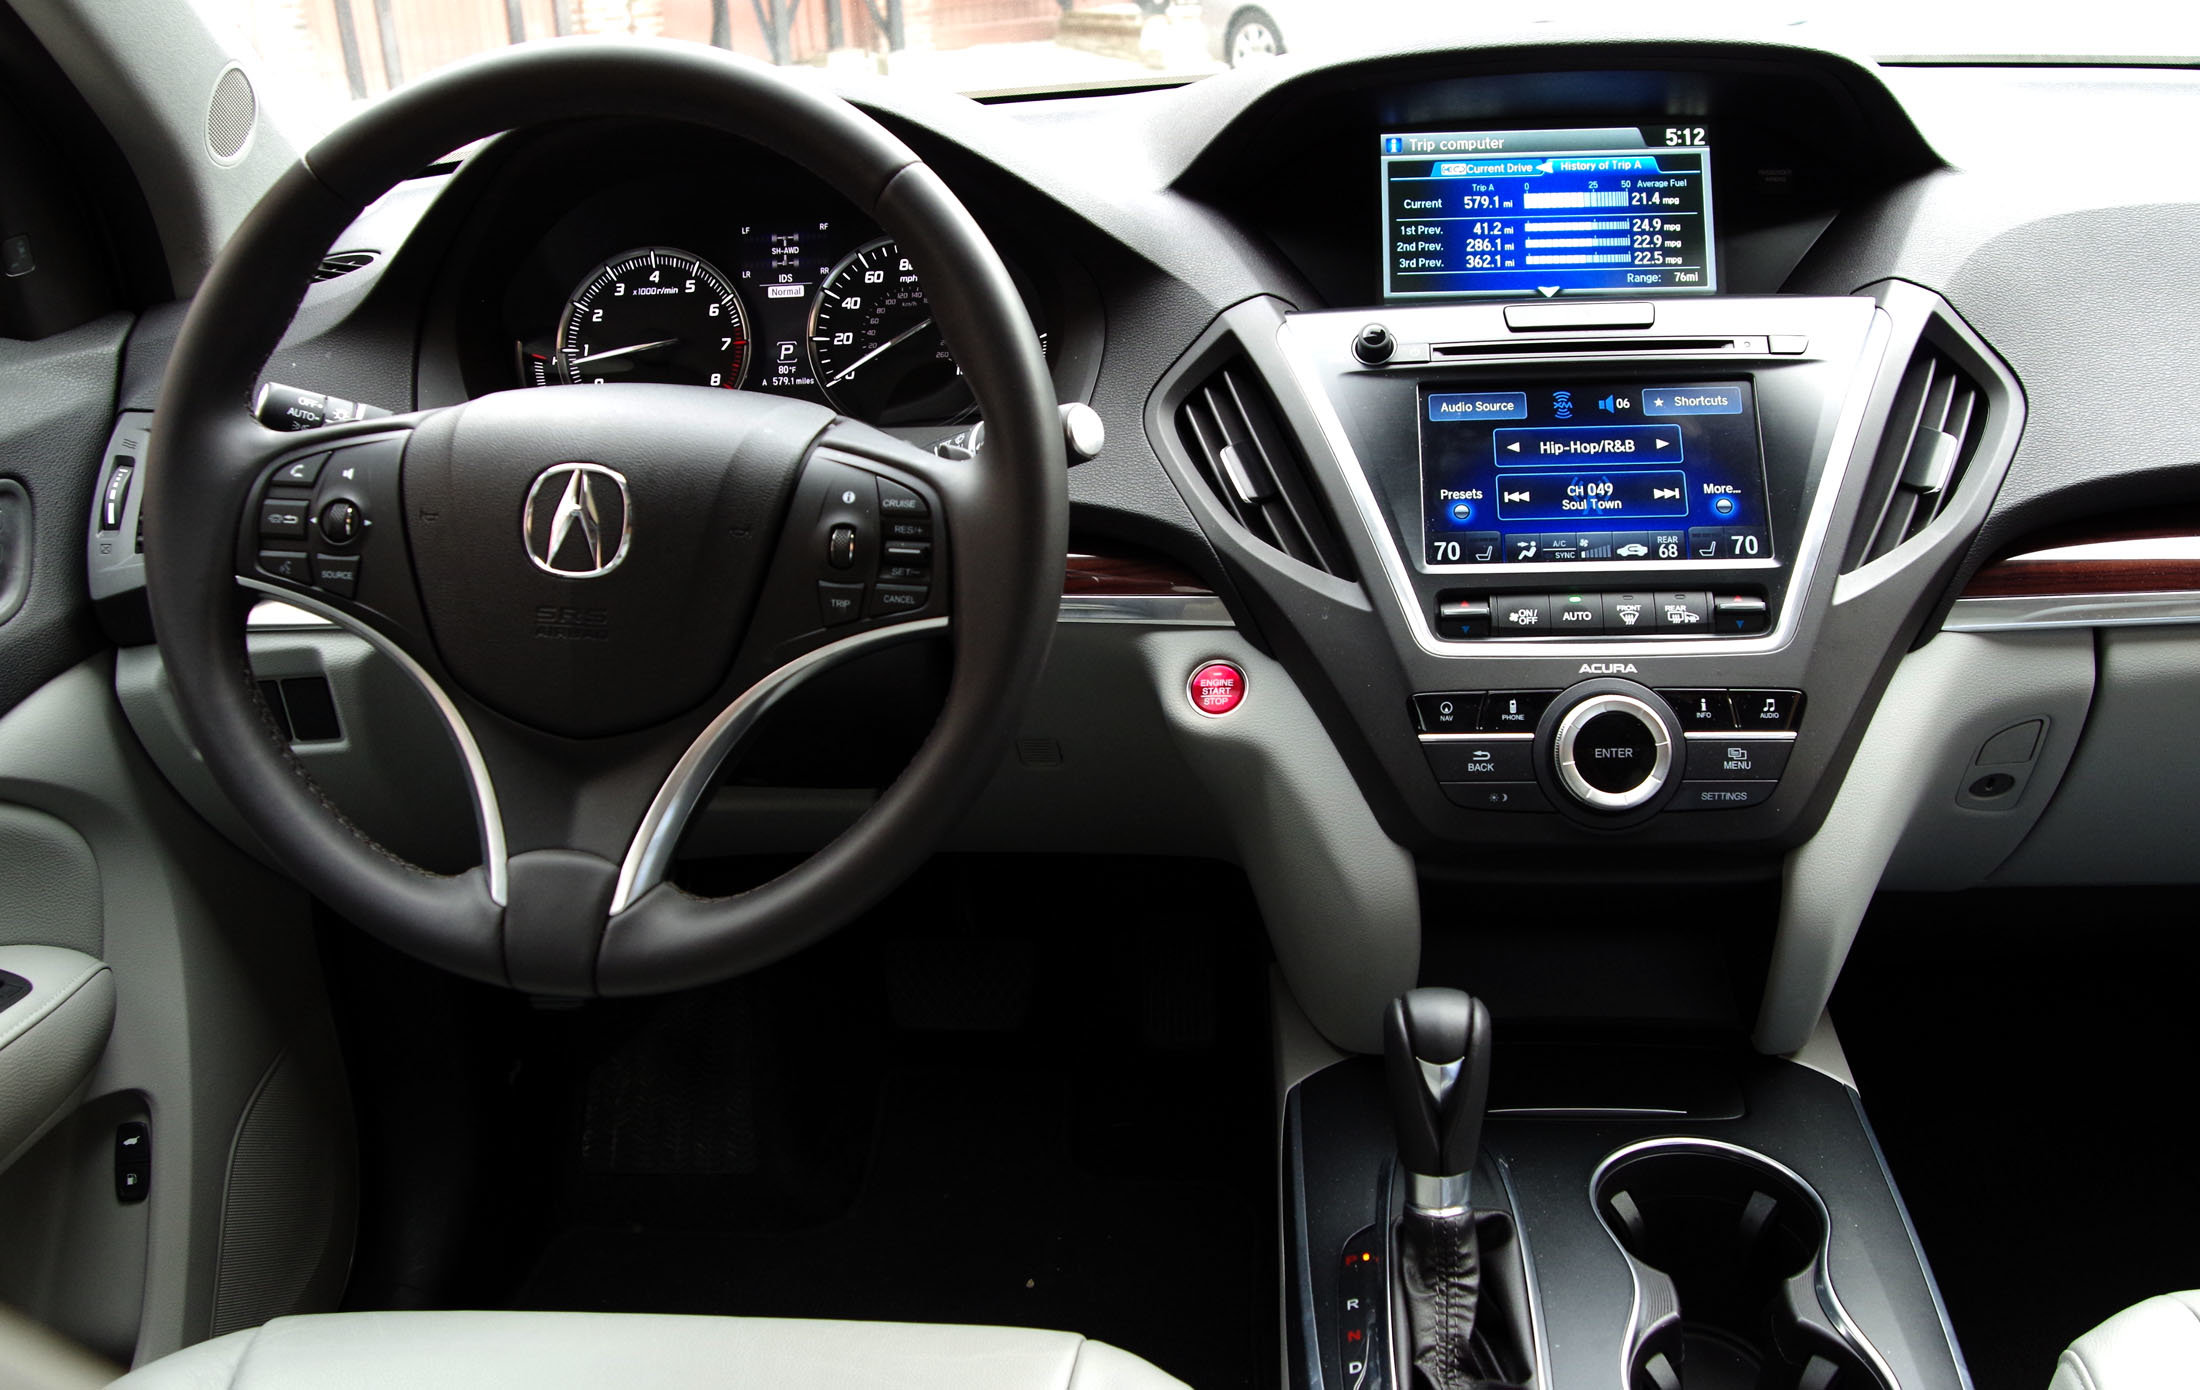 The dashboard of the 2014 Acura MDX.